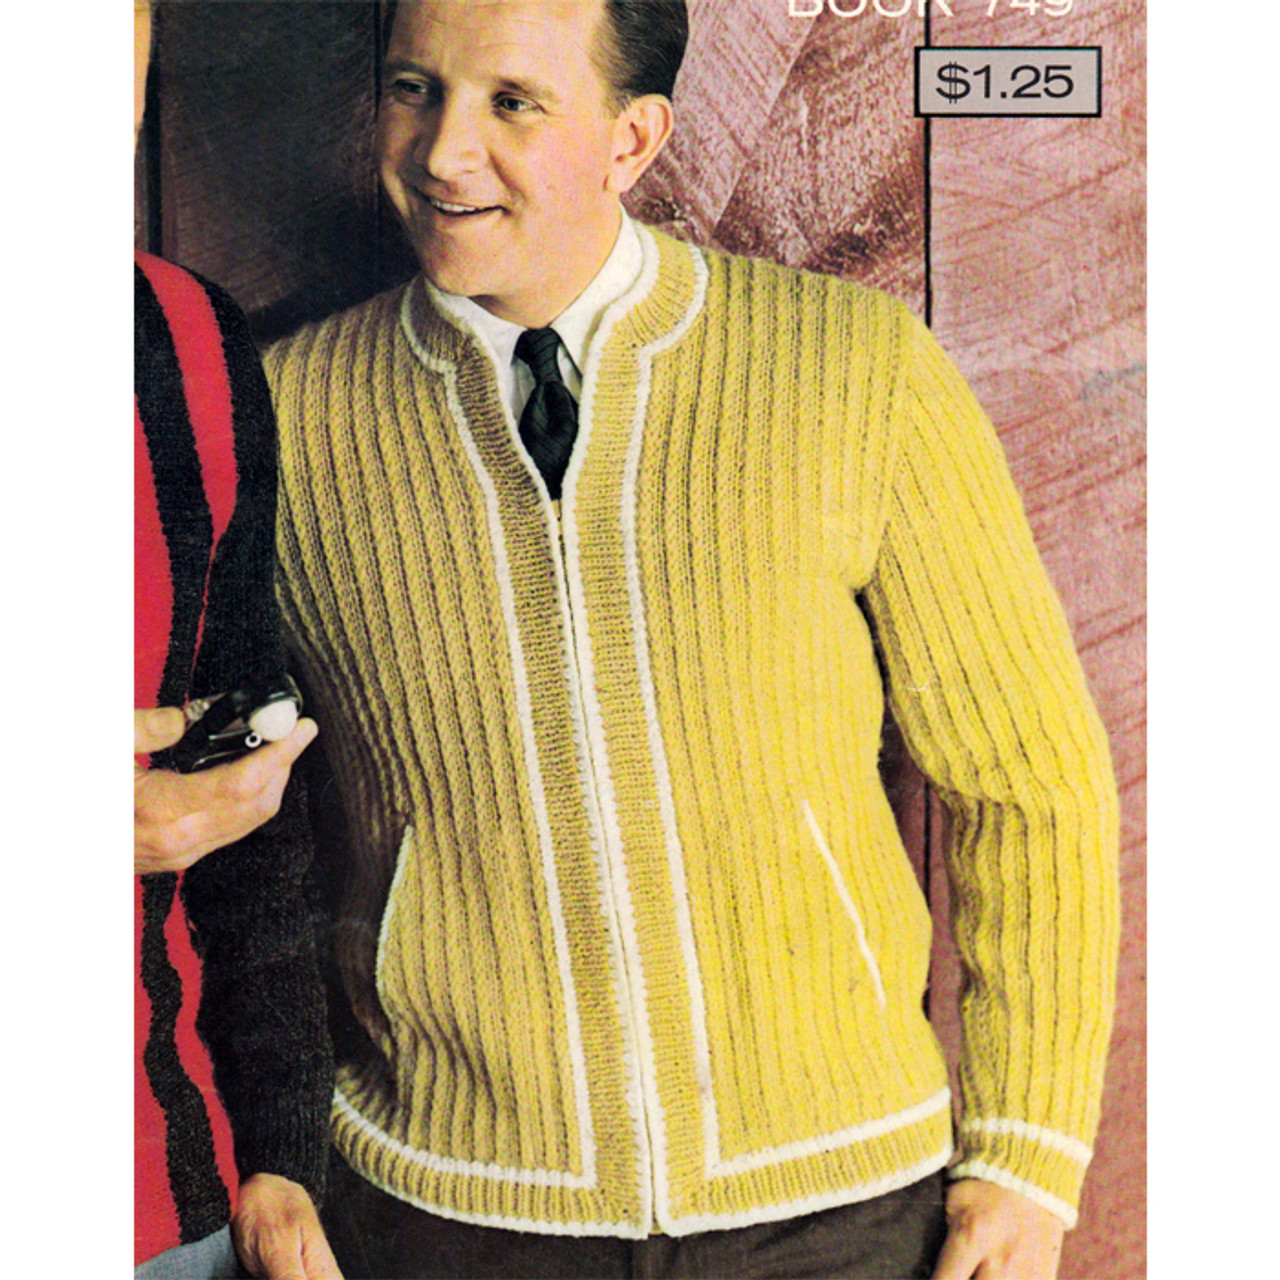 Vintage Knitted Jacket with Zipper for Men